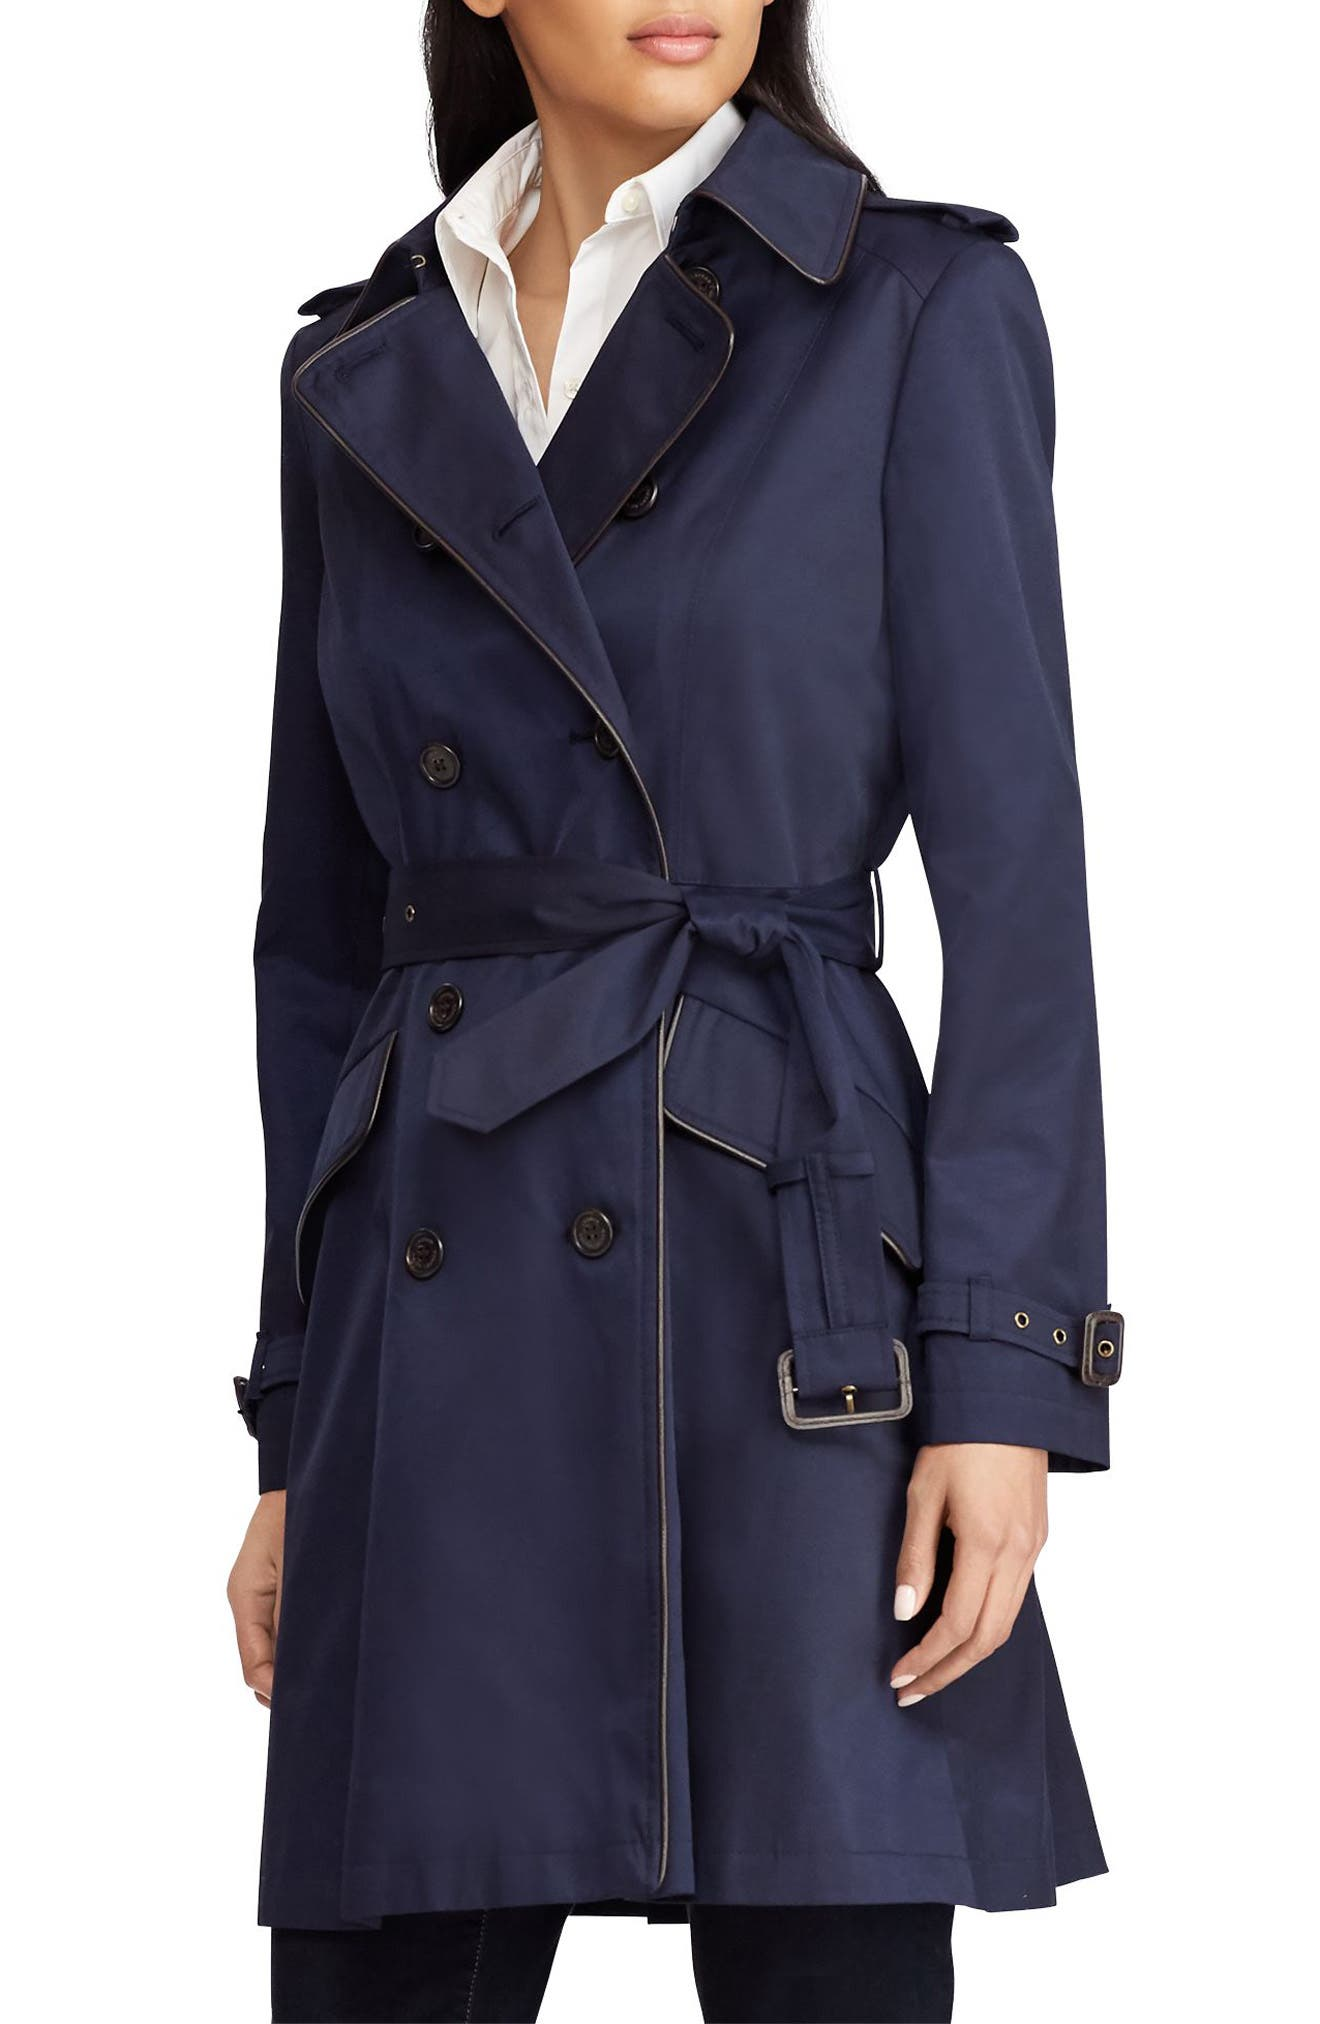 Lauren Ralph Lauren Double Breasted Short Trench Coat (Regular \u0026 Petite)